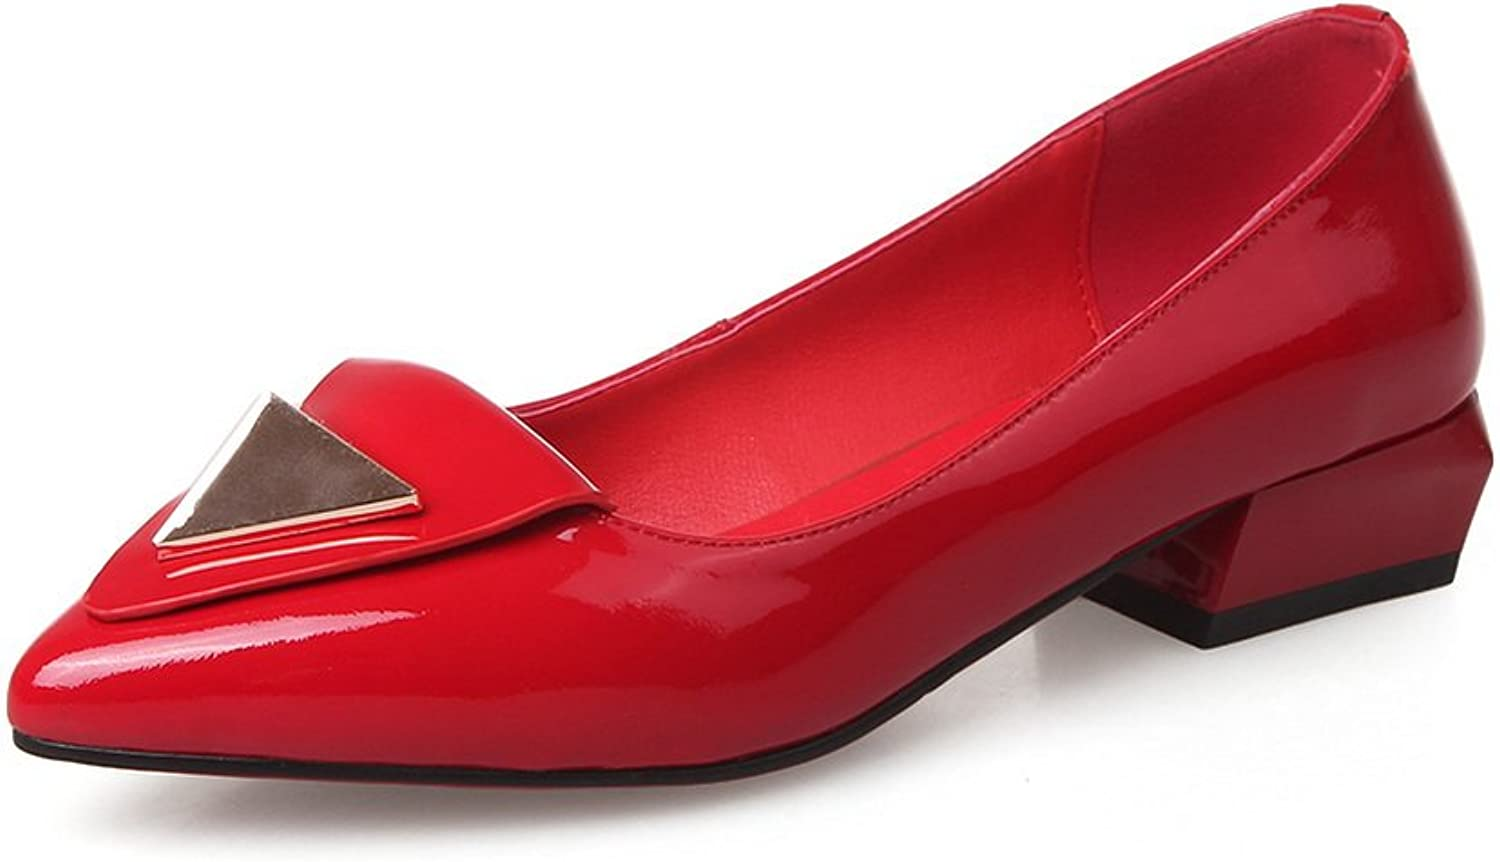 1TO9 Womens Professional Pointed-Toe Light-Weight Leather Loafers shoes MMS05000